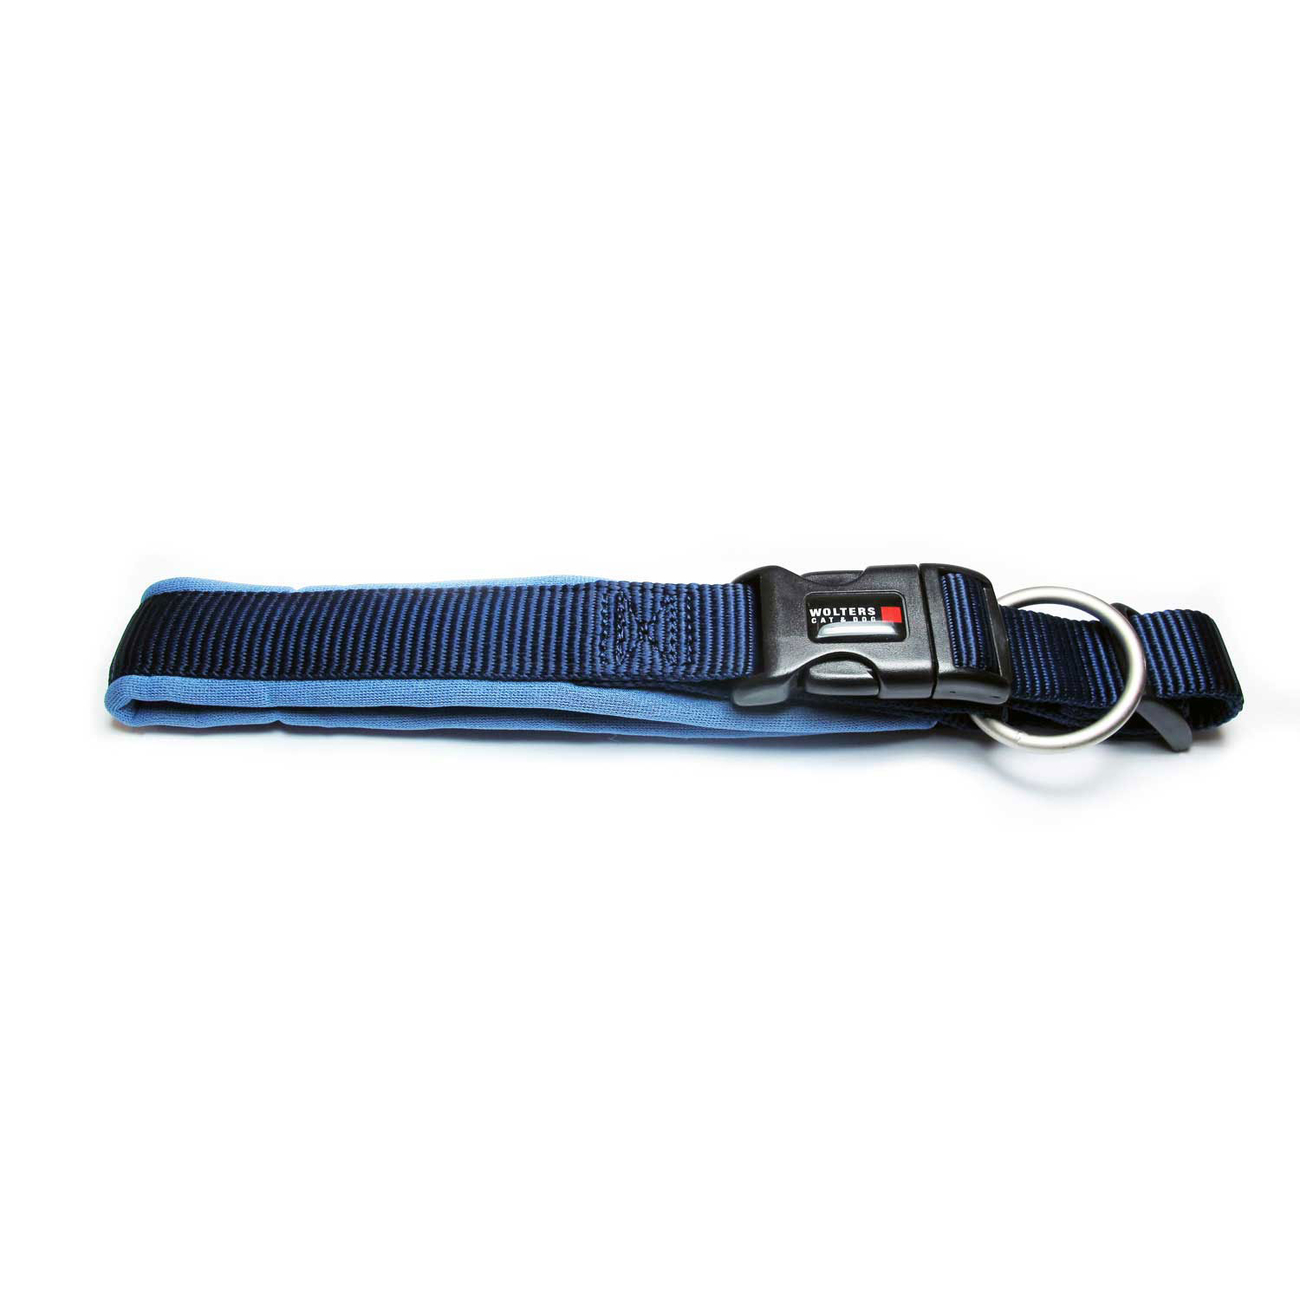 Wolters Halsband Professional Comfort, Bild 9